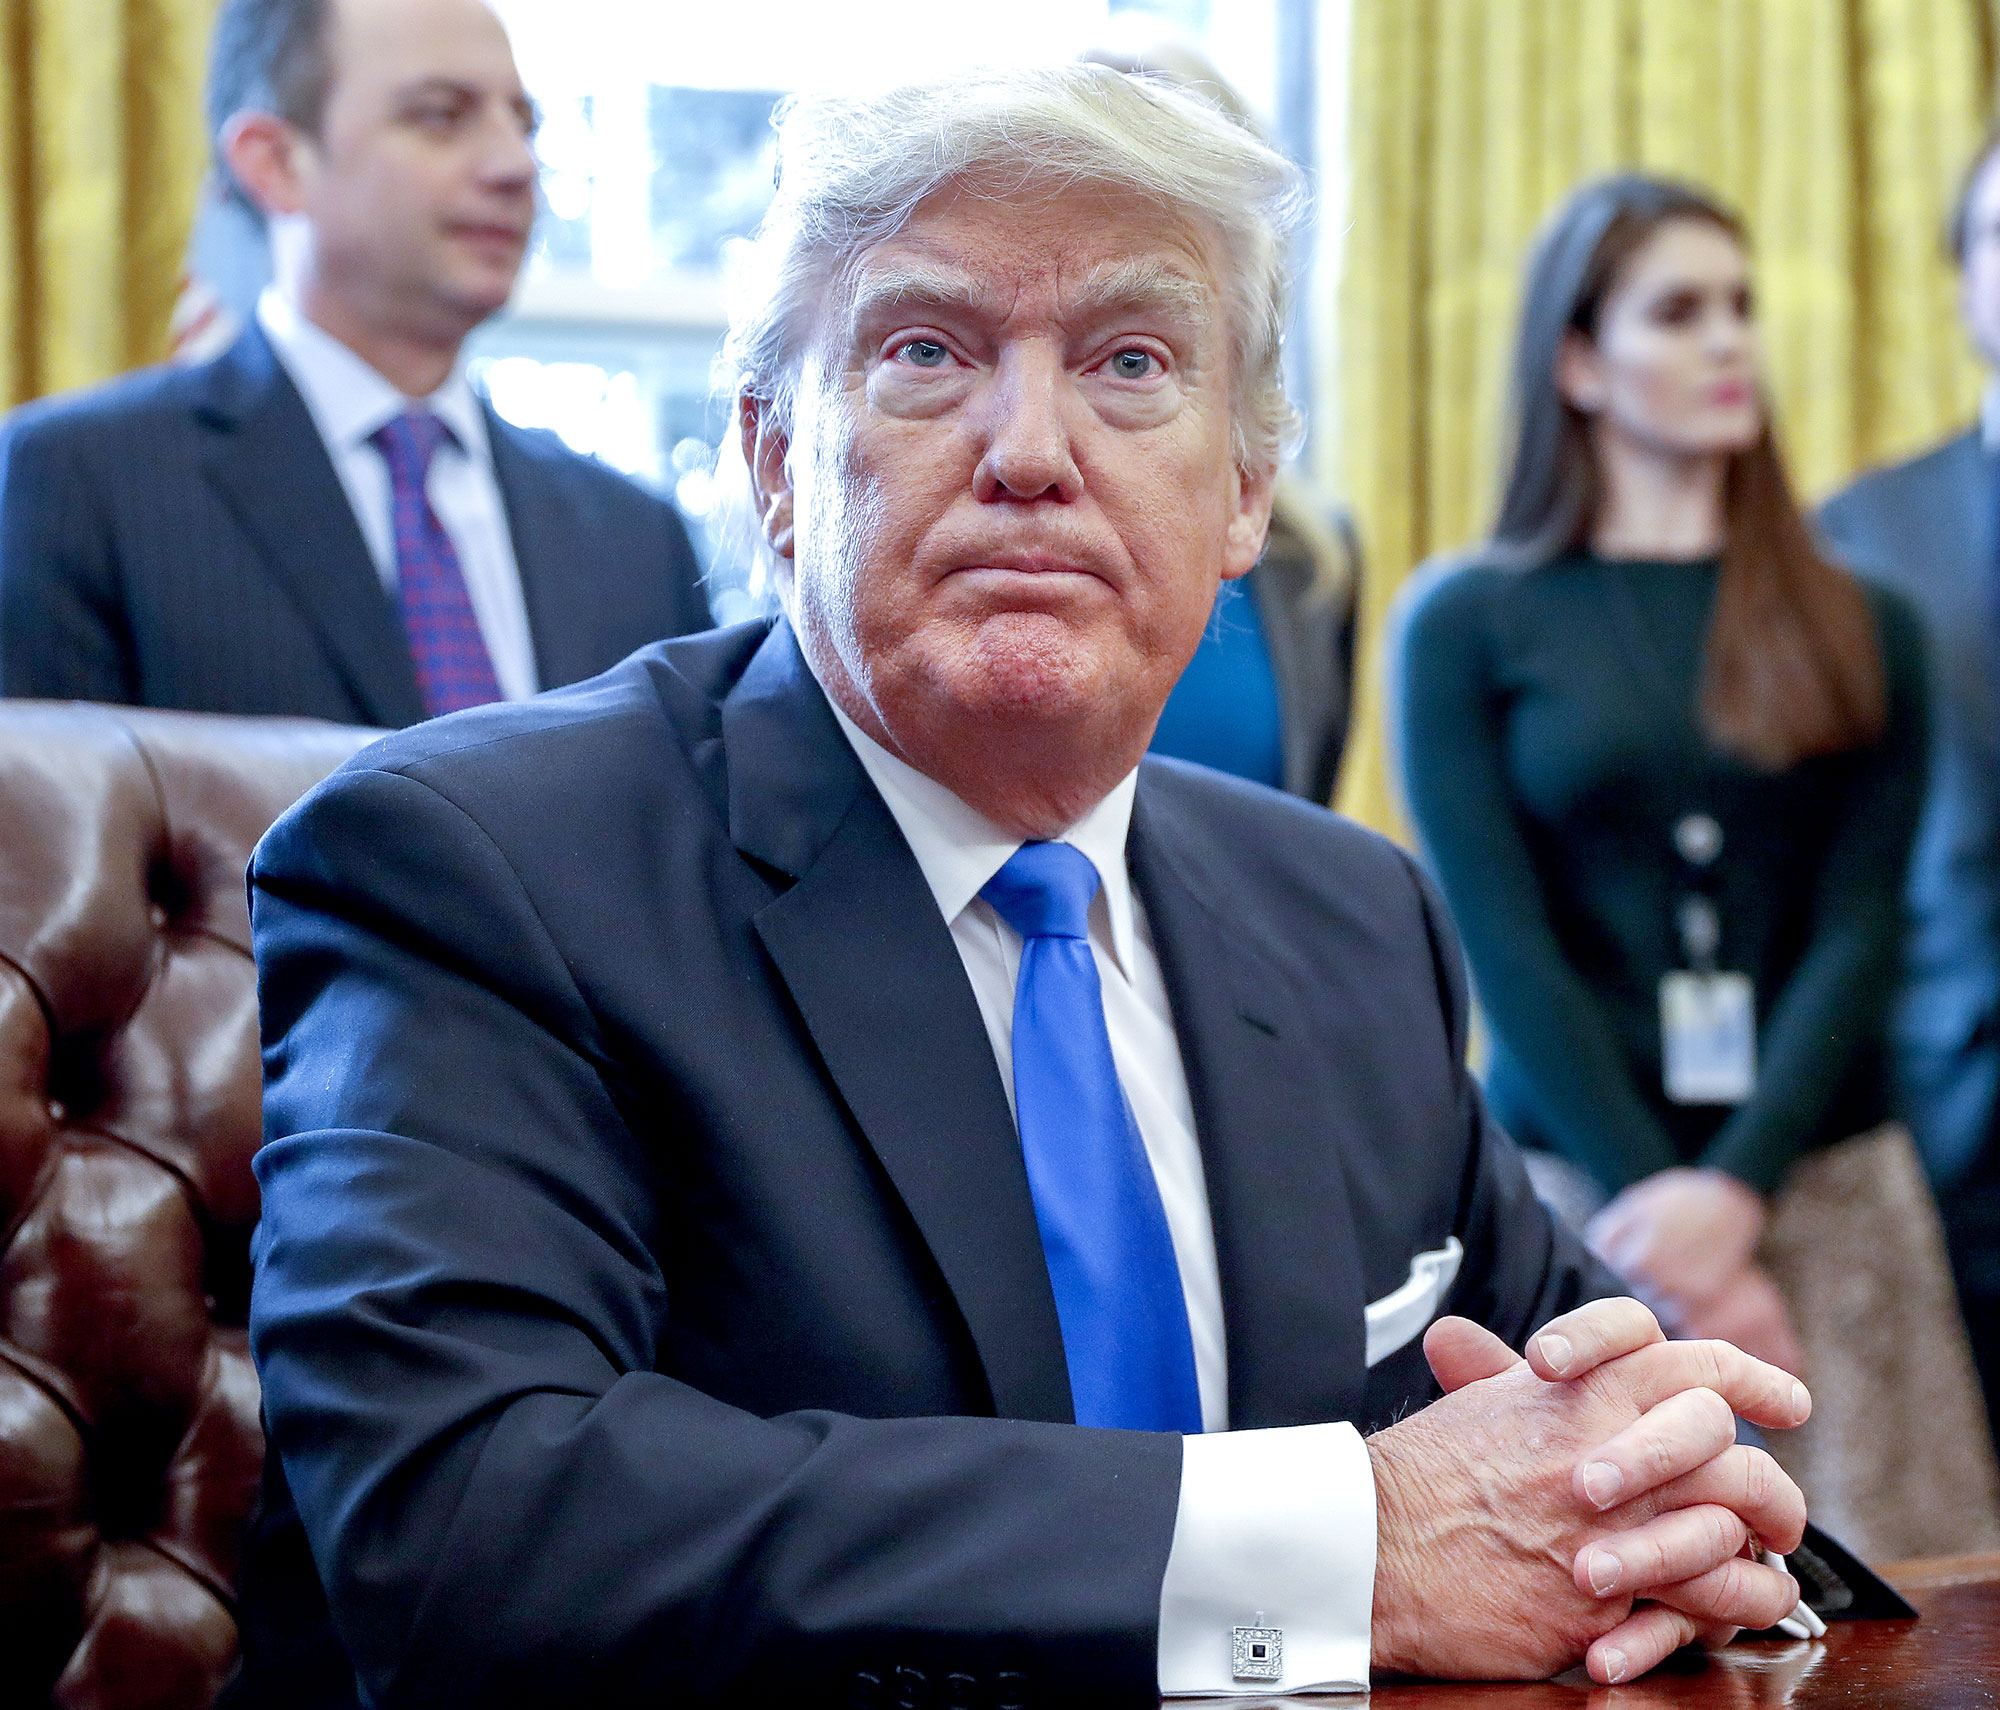 Donald Trump sits after signing one of five executive orders related to the oil pipeline industry in the Oval Office of the White House in Washington, D.C., U.S., Tuesday, Jan. 24, 2017.